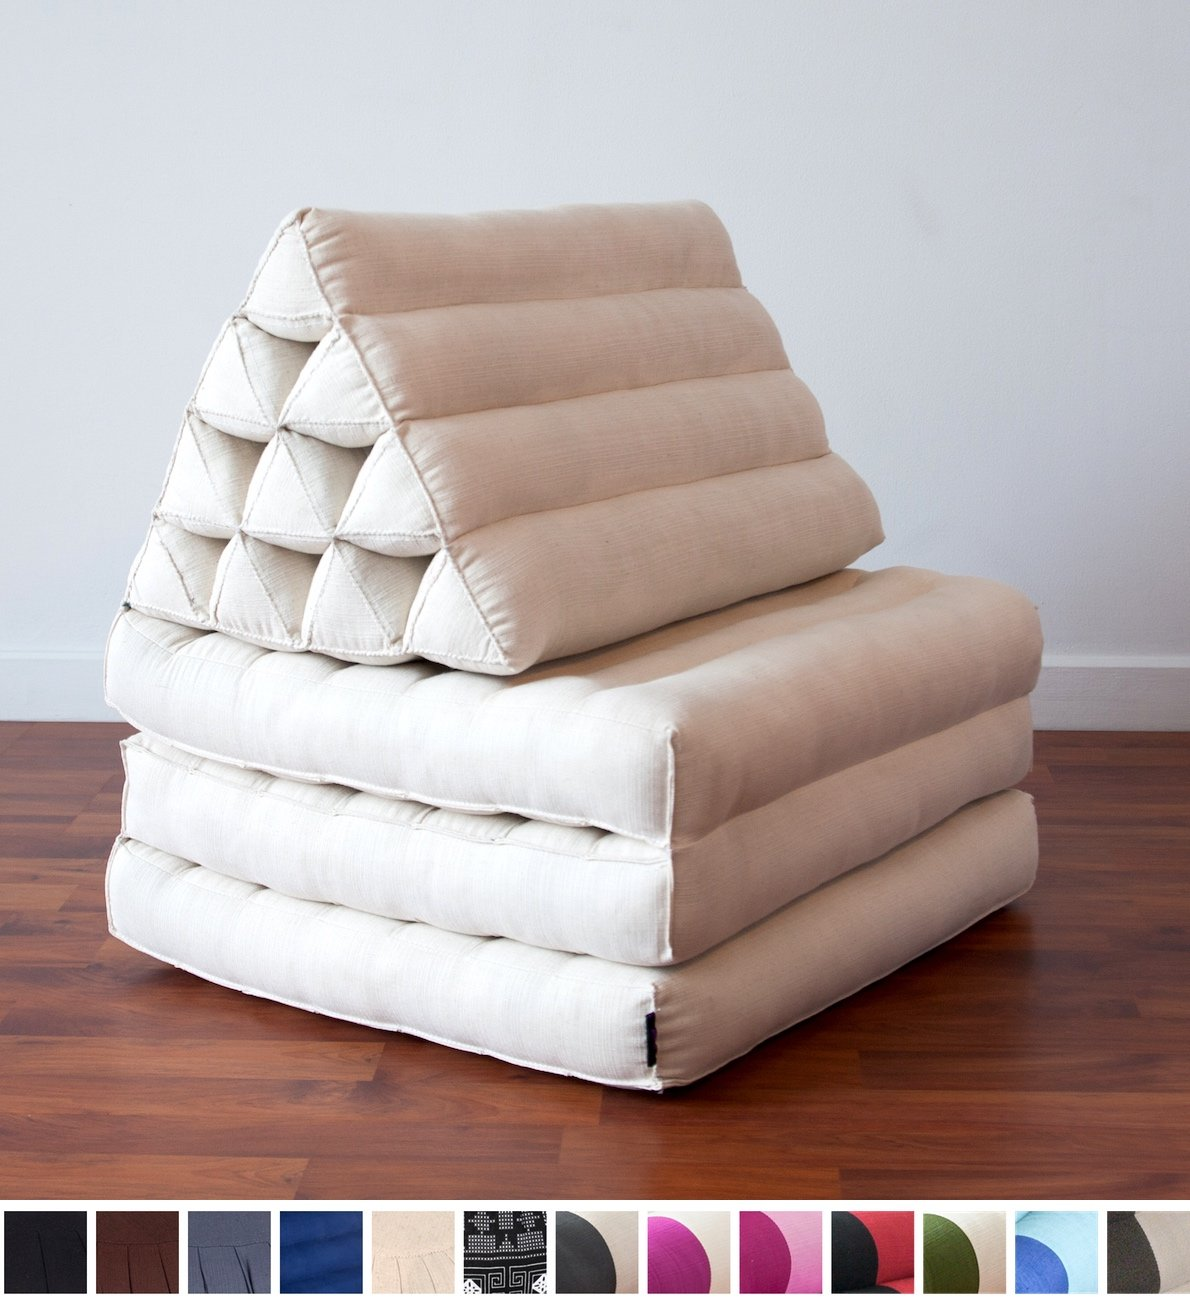 Leewadee Foldout Triangle Thai Cushion, 67x21x3 inches, Kapok Fabric, White, Premium Double Stitched by Leewadee